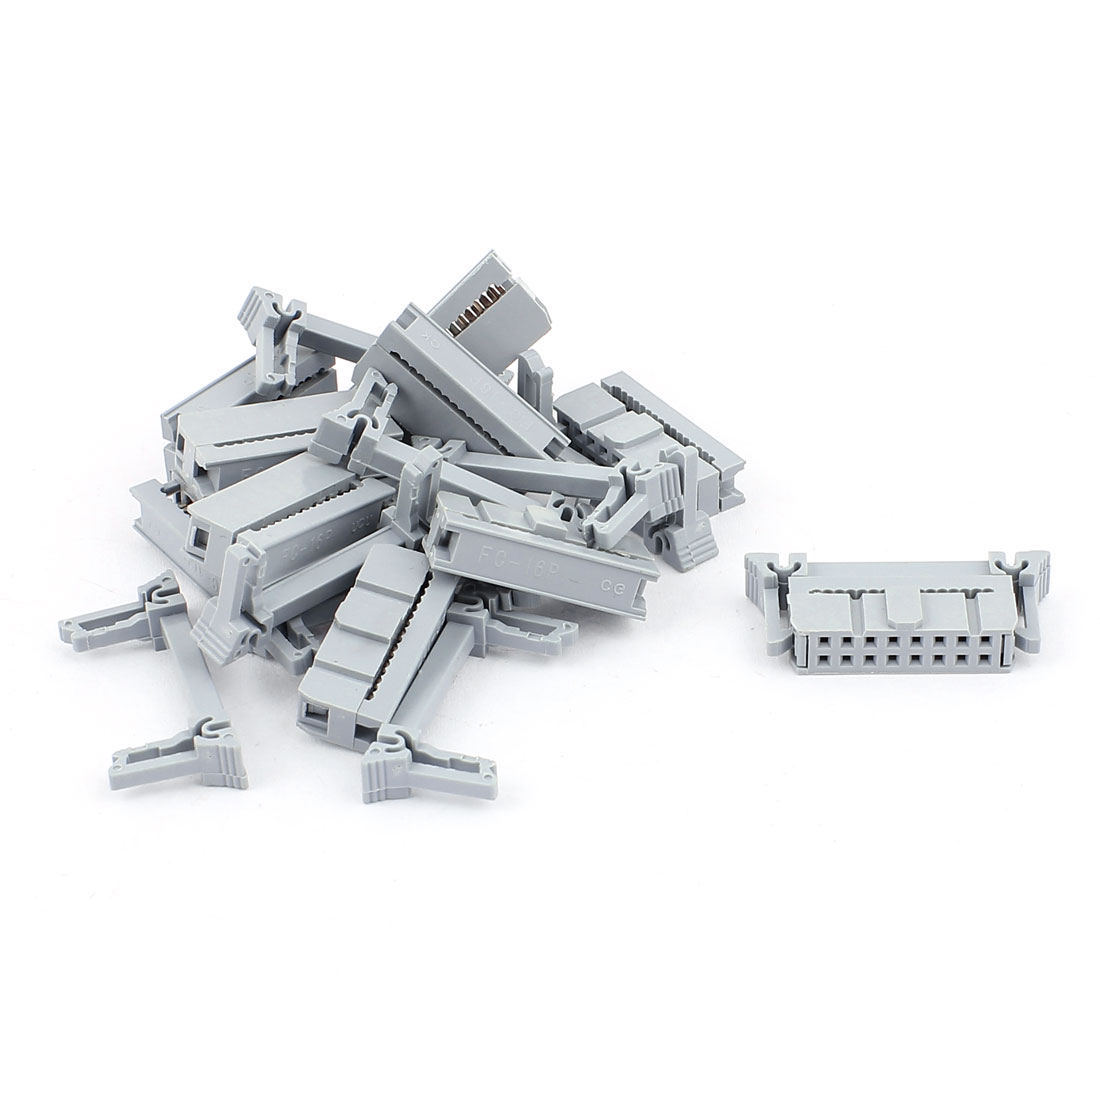 10 Pcs 2 Rows 16 Pins FC-16P IDC Socket Connector Male Header Light Gray